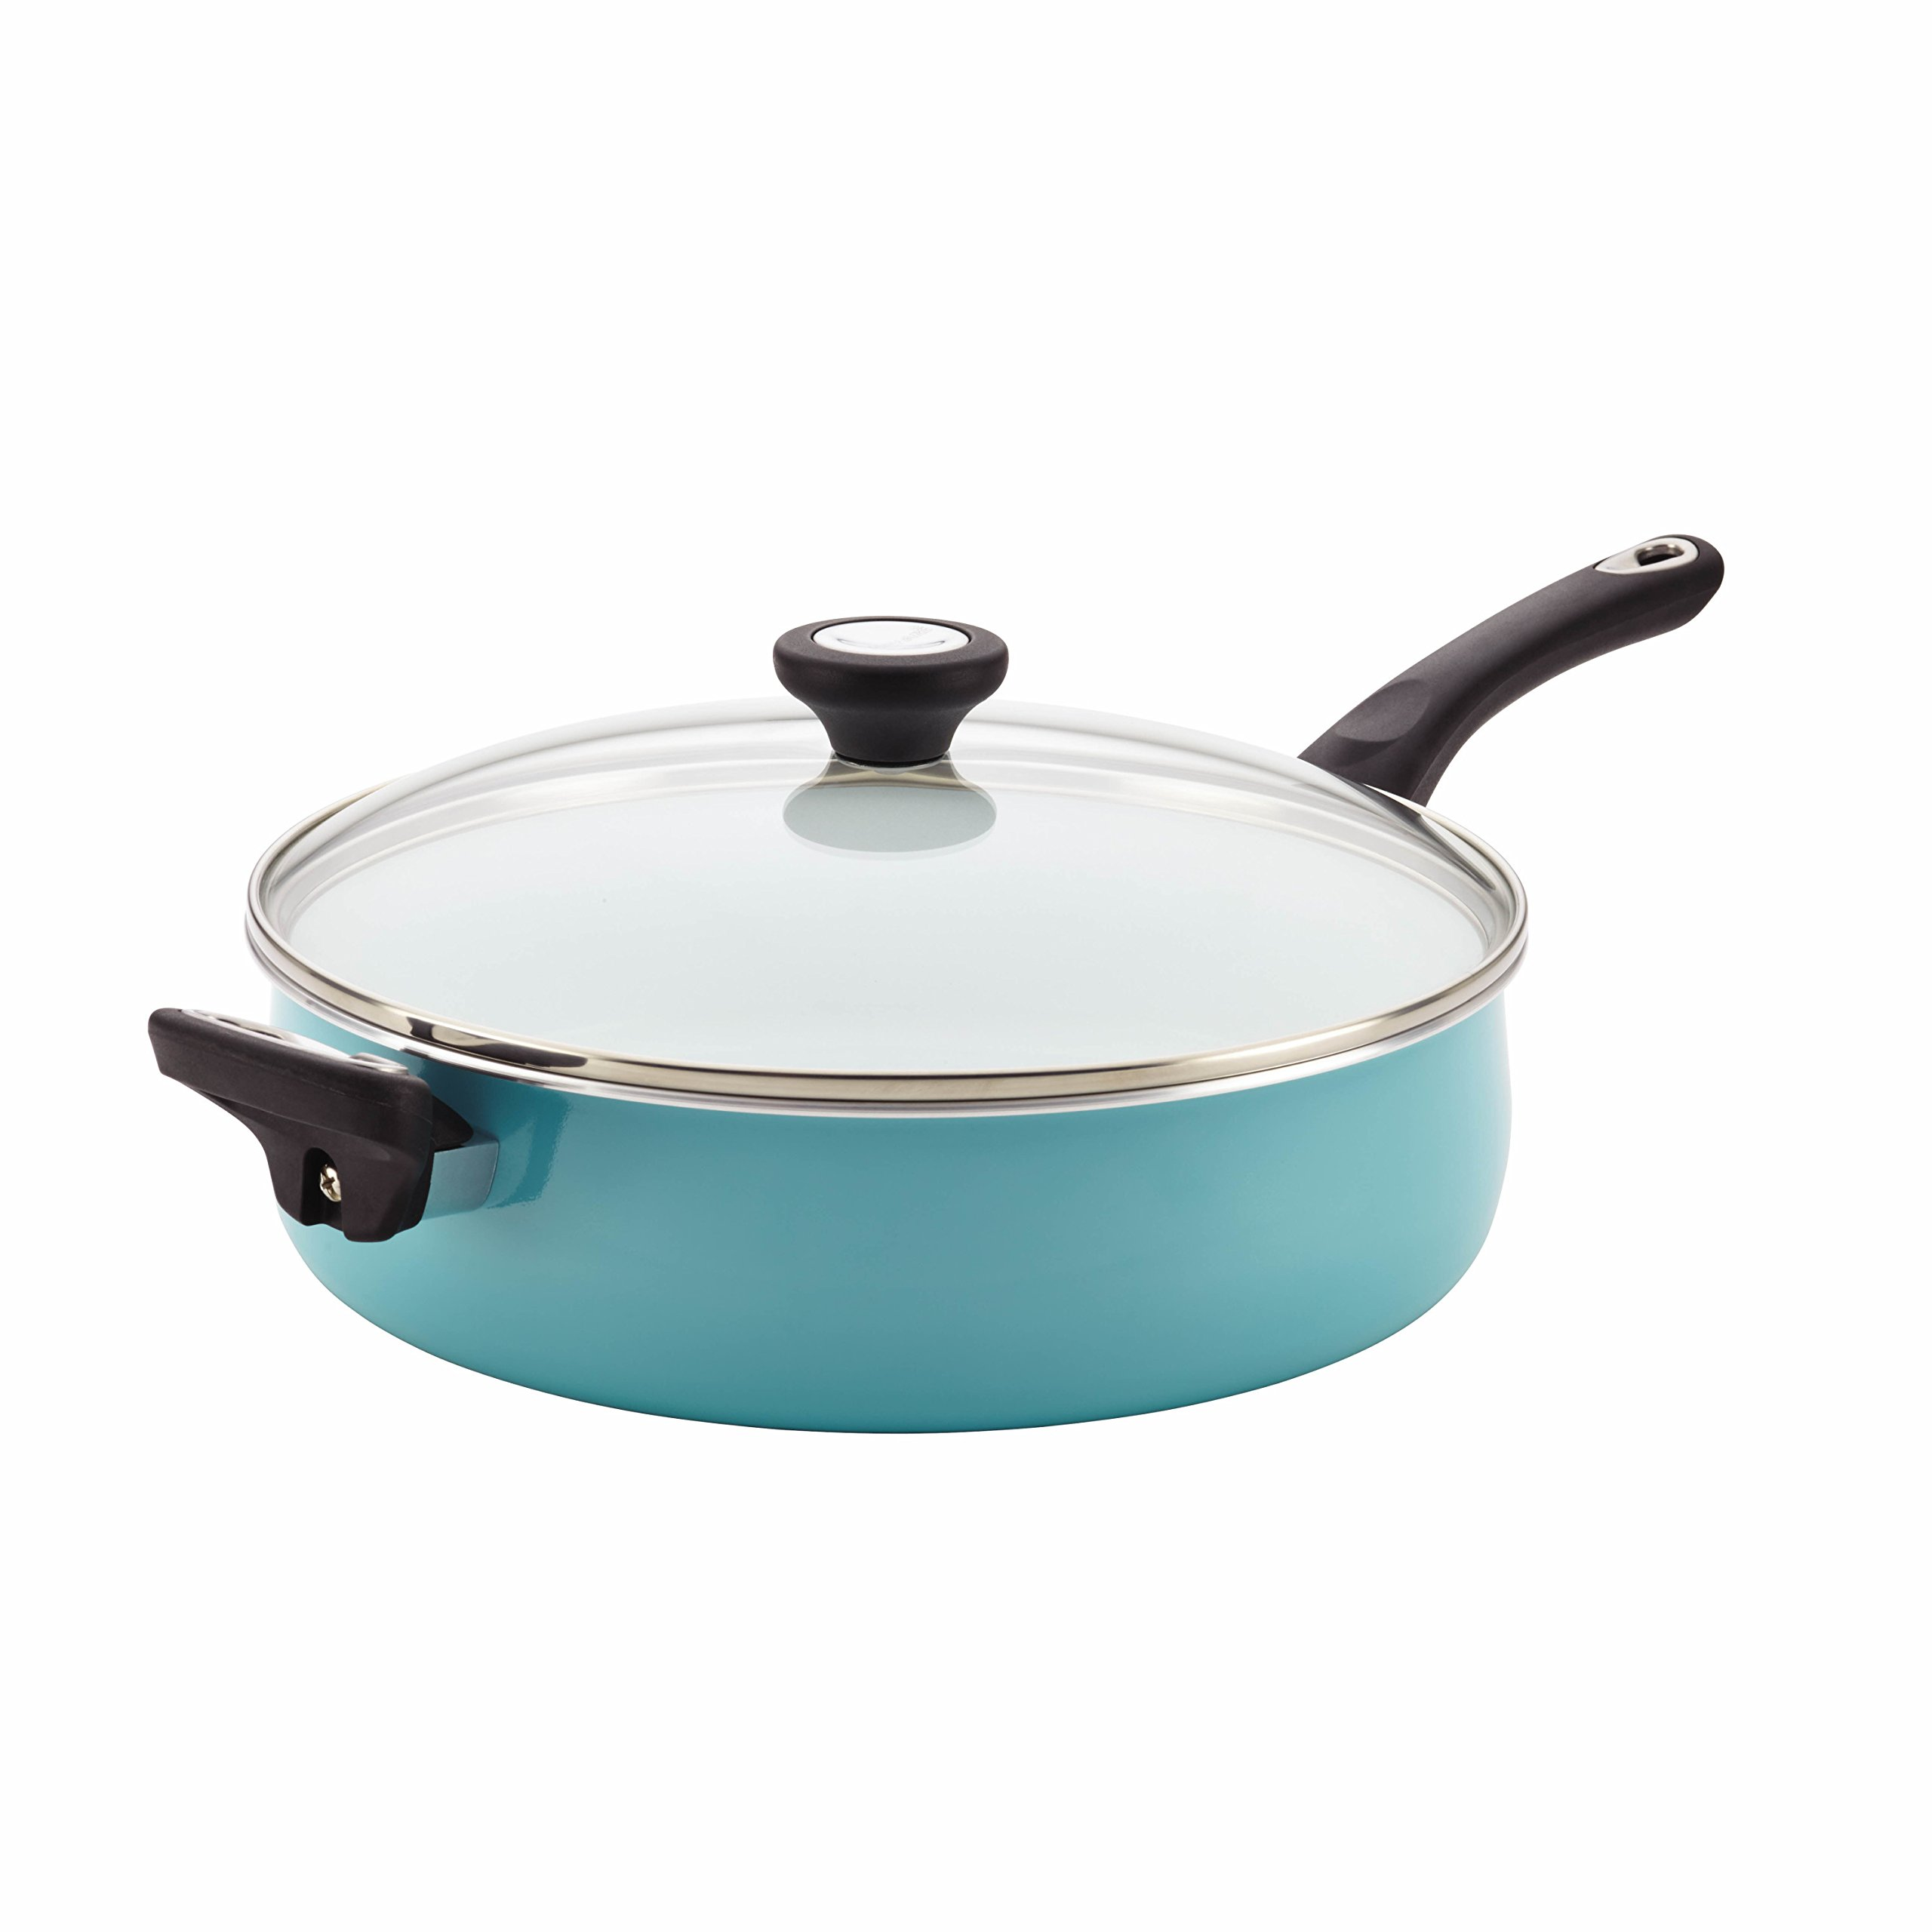 Farberware 17497 PURECOOK Ceramic Nonstick Jumbo Cooker/Saute Pan with Helper Handle - 5 Quart, Blue